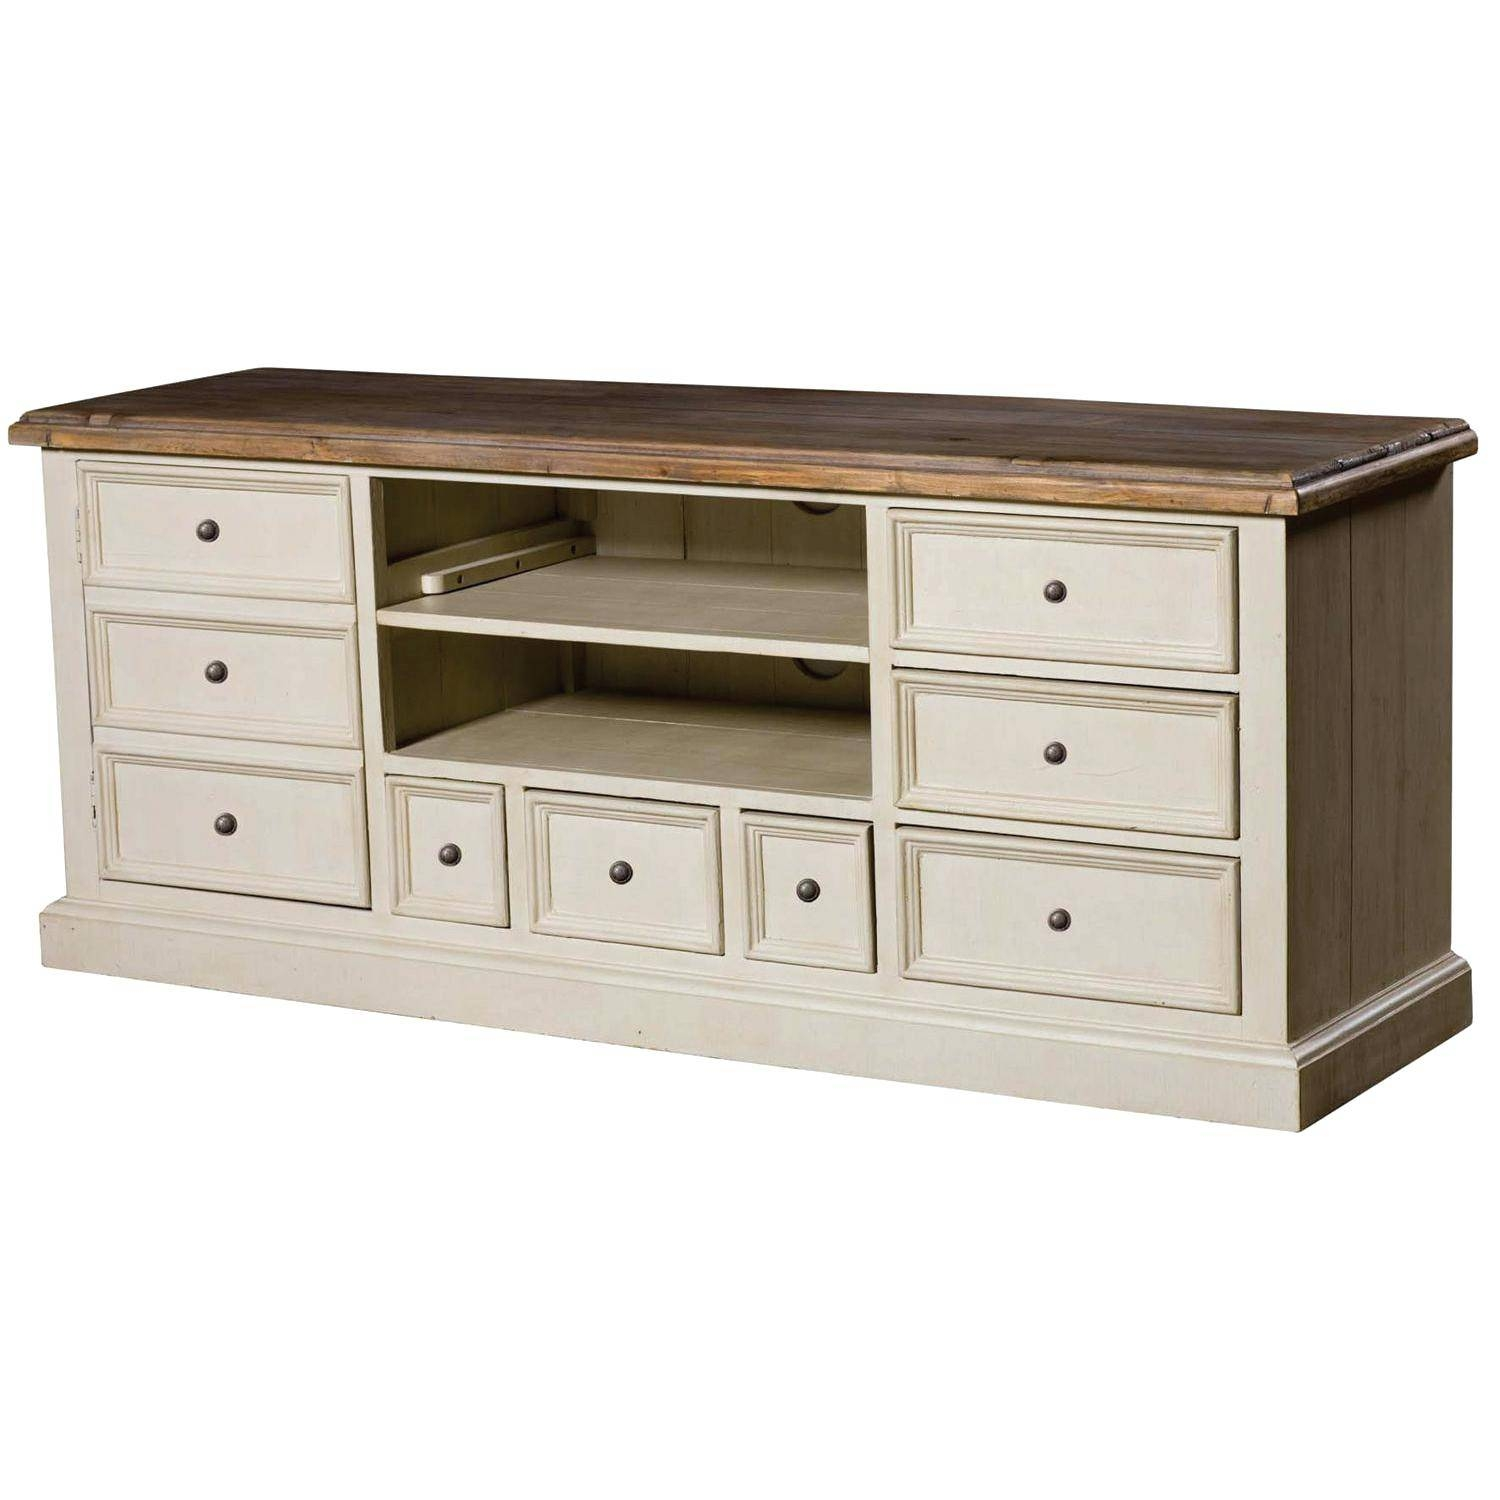 Tv Stand : Nexera Allure 60 Inch Tv Stand 2 Open Shelves 2 Drawers Pertaining To Tv Stands With Drawers And Shelves (View 15 of 15)